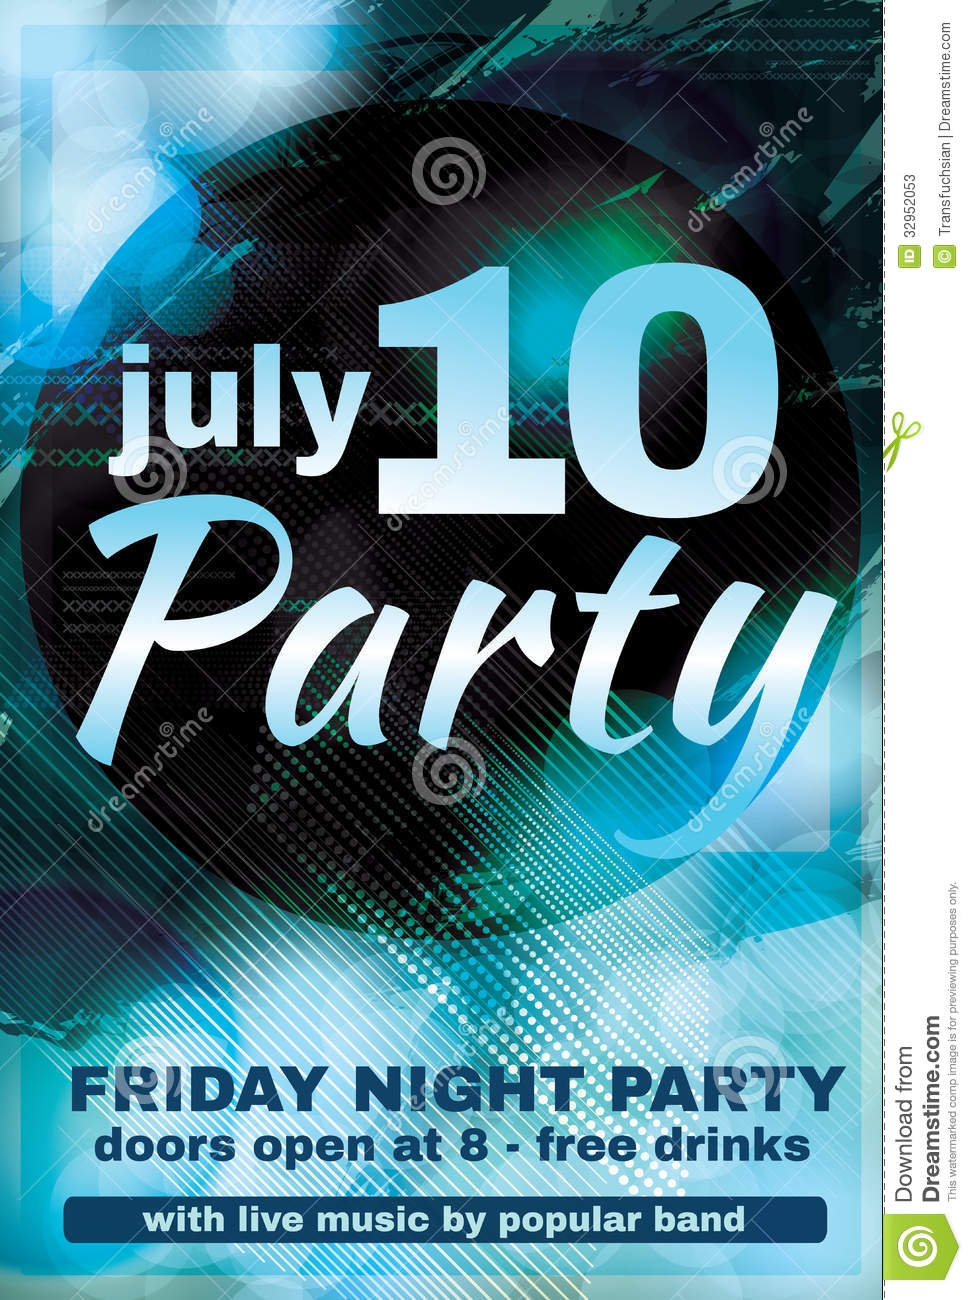 Blue Night Club Flyer Design Photos Image 32952053 – Night Club Flyer